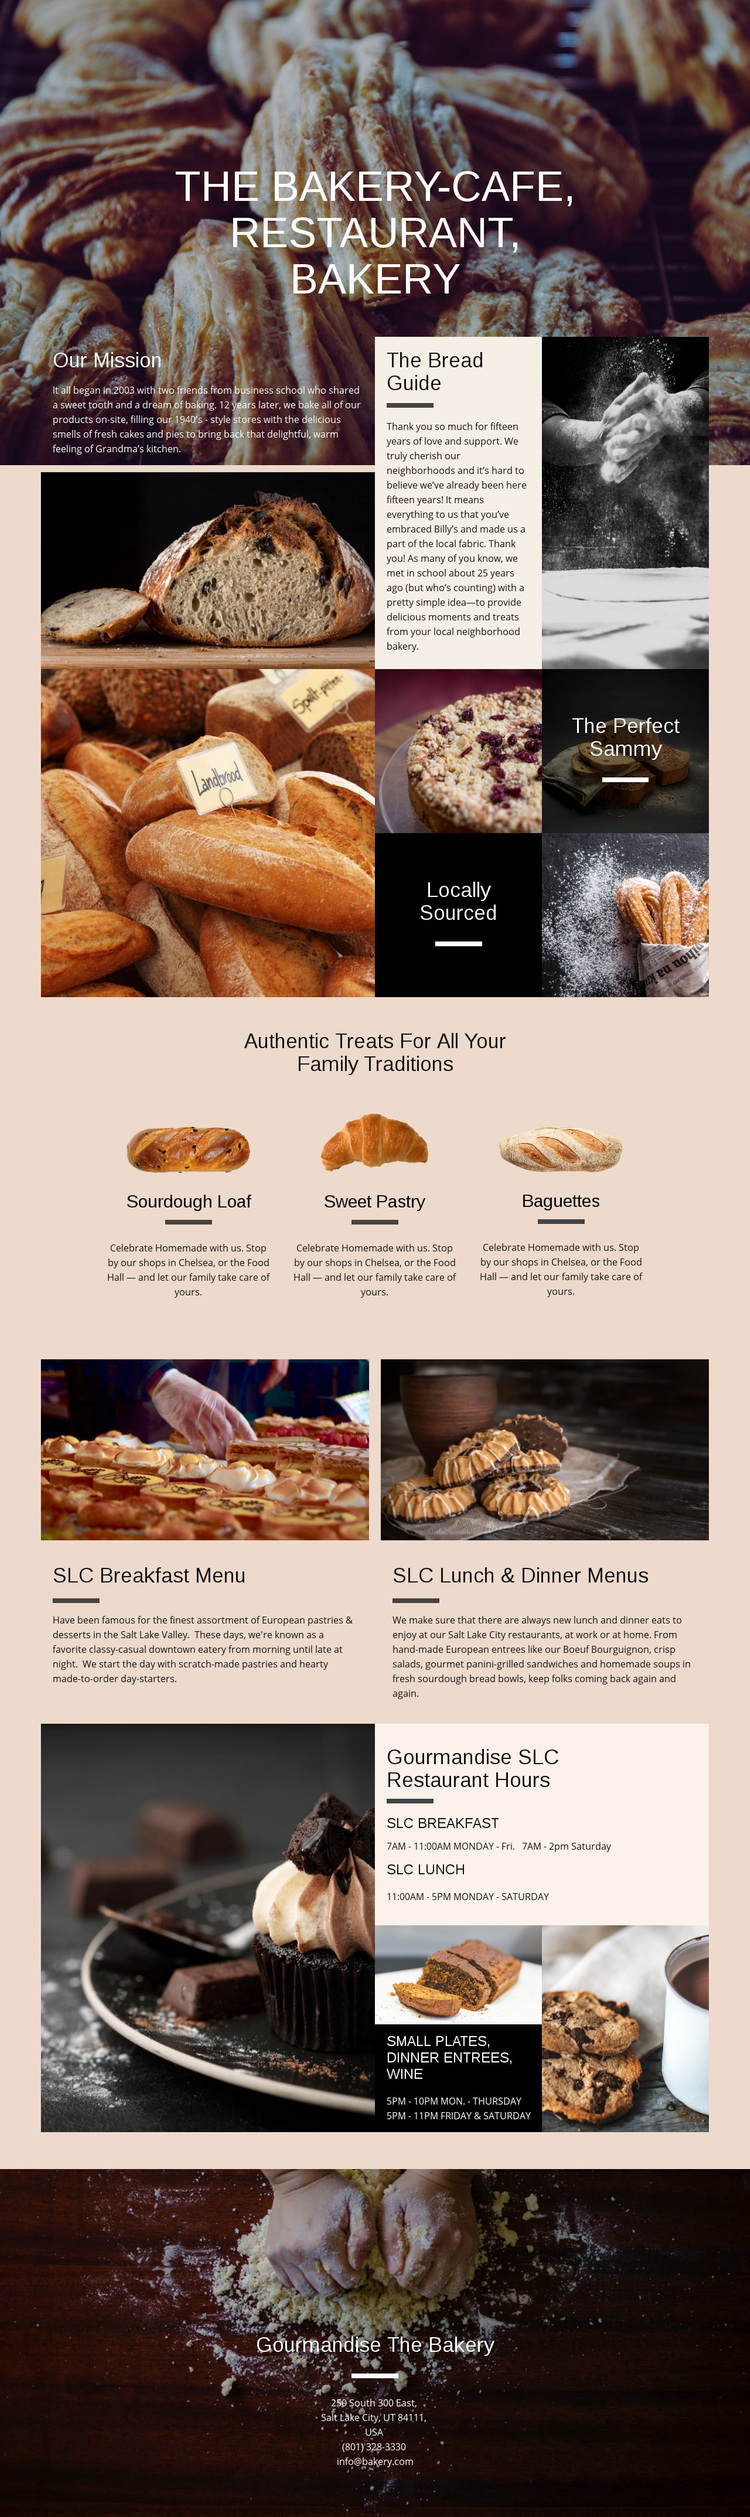 The Bakery Web Page Designer